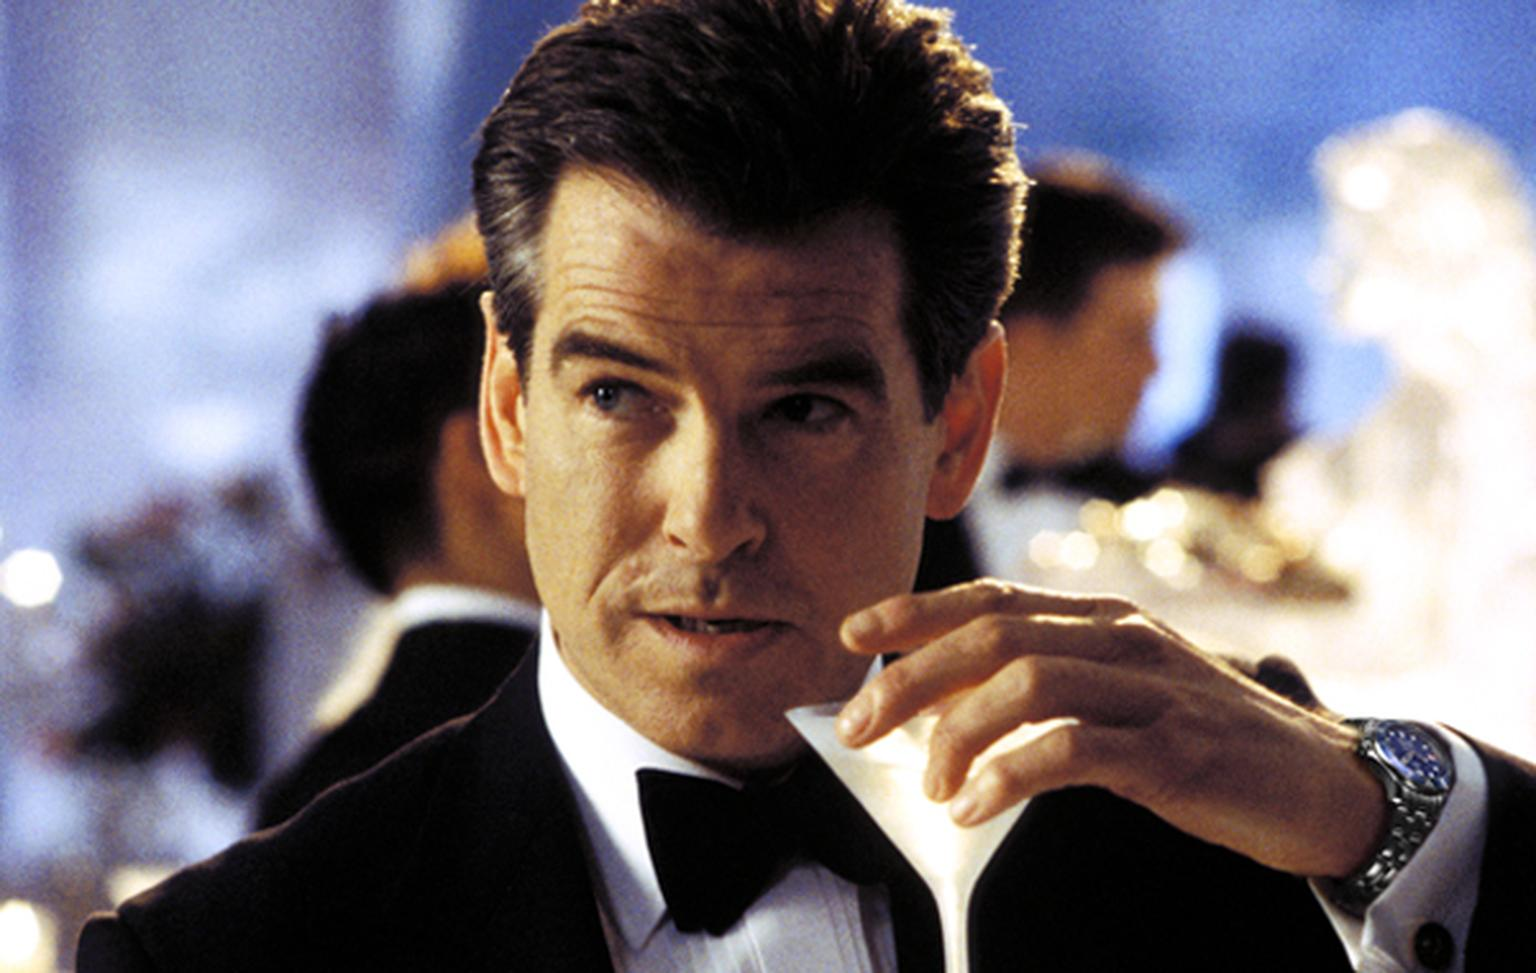 Pierce Brosnan in his final outing as James Bond in Die Another Day (2002)